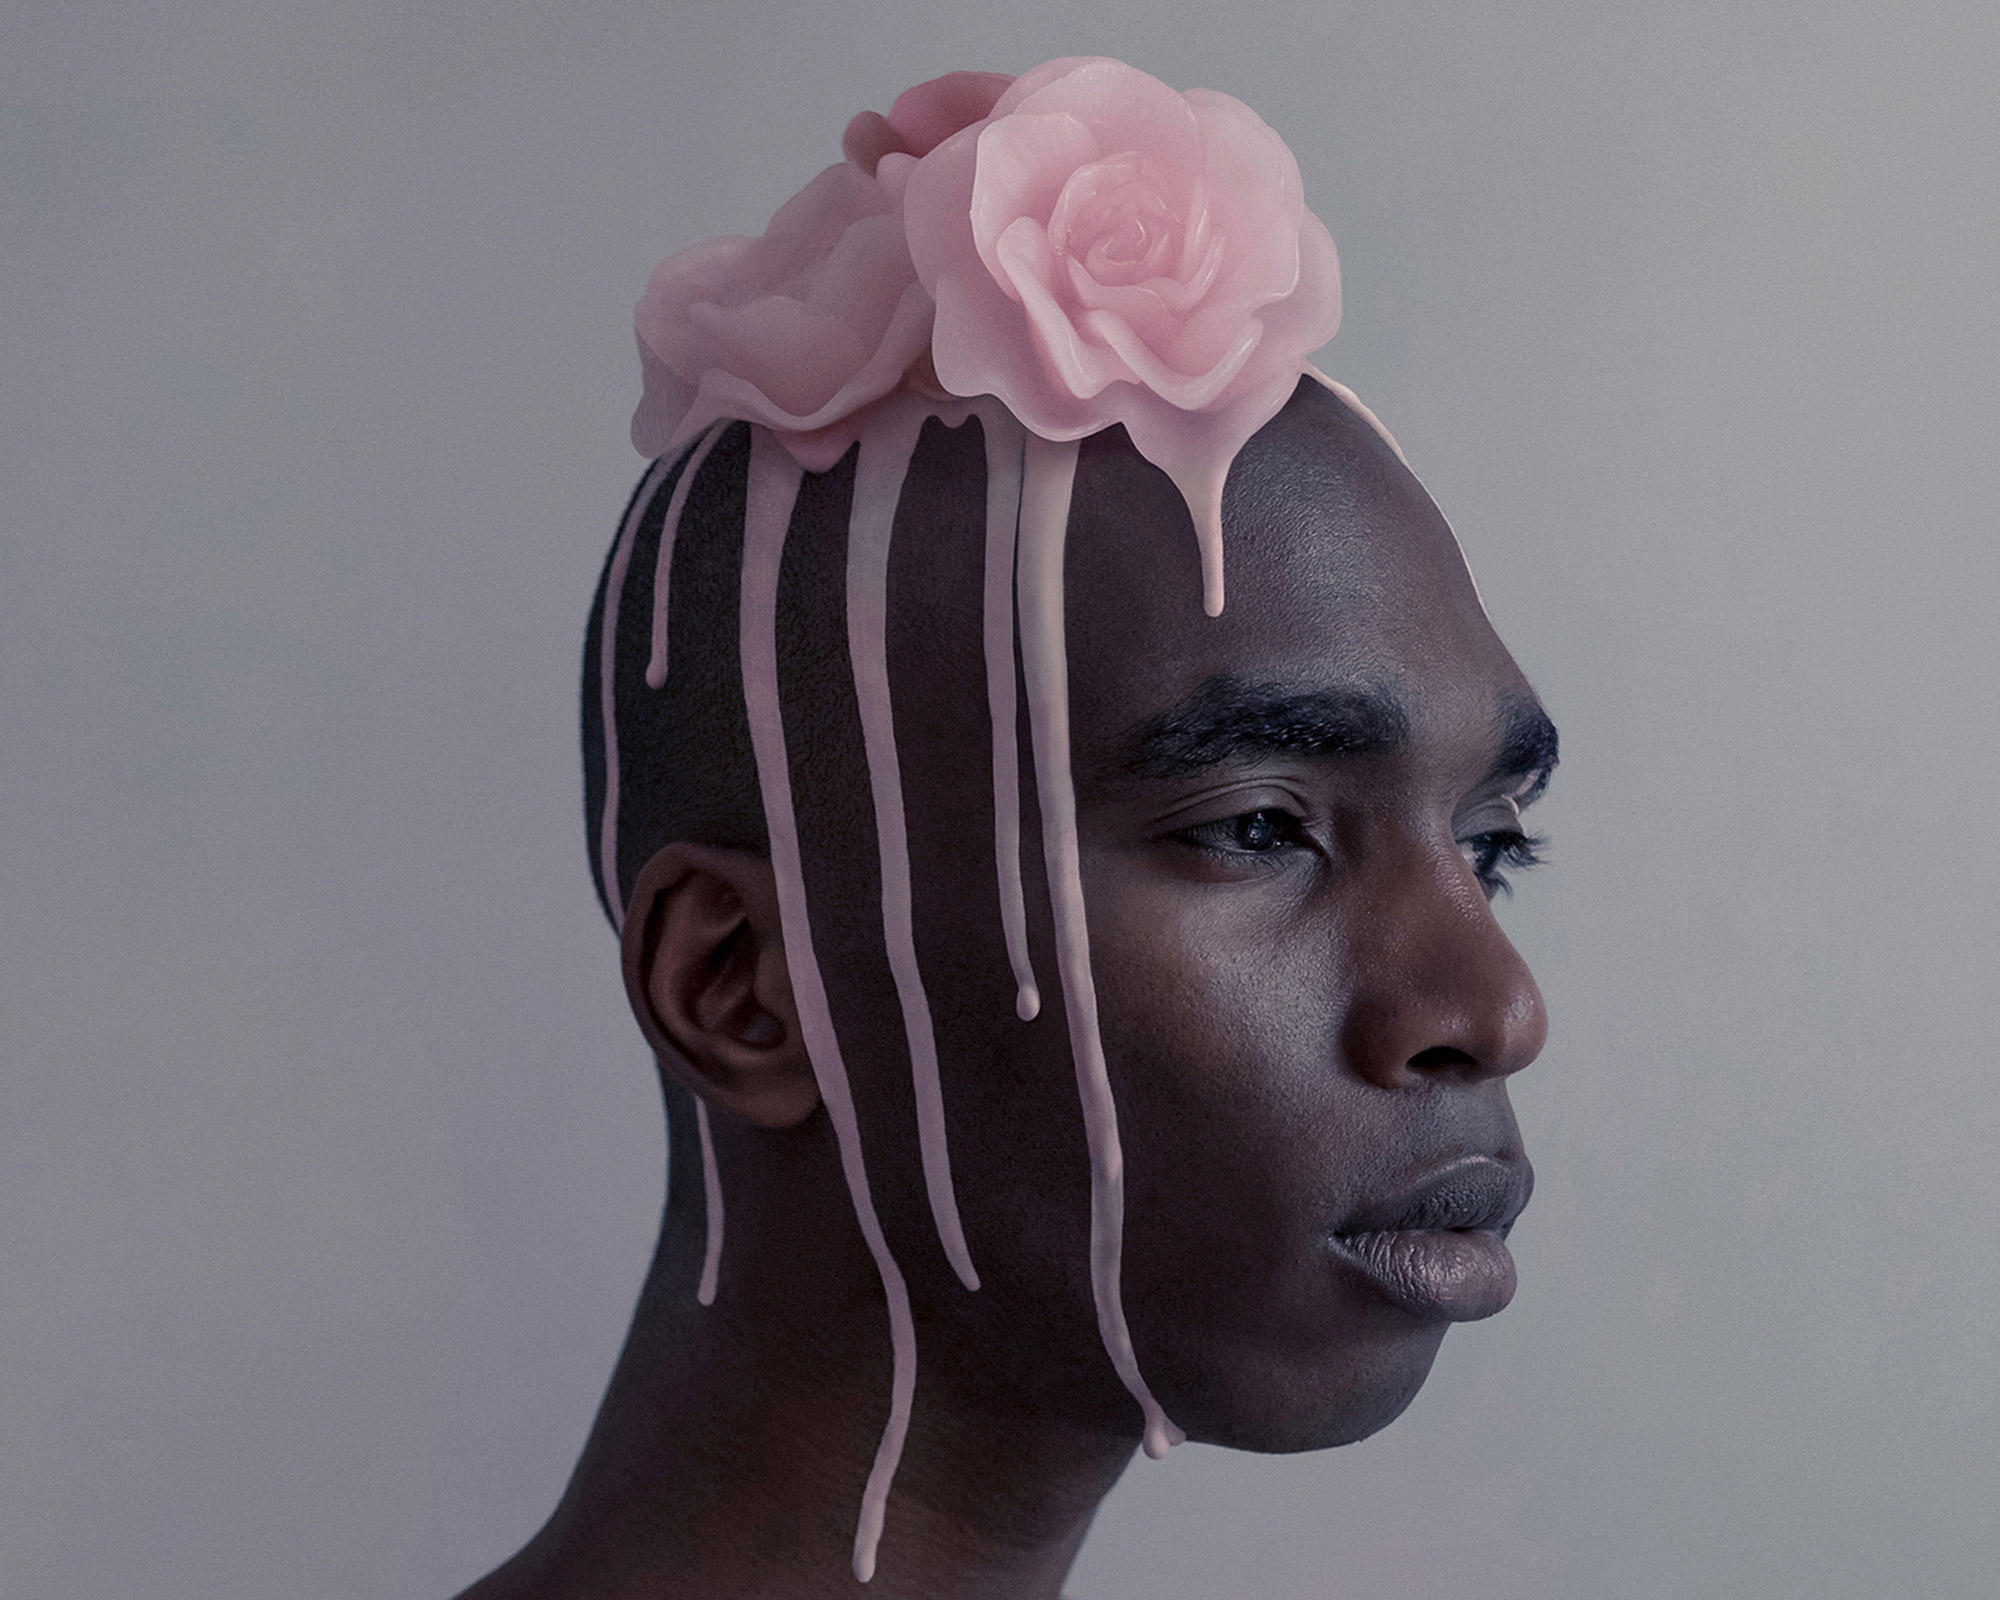 Brooke DiDonato, Roses - pink rose on head